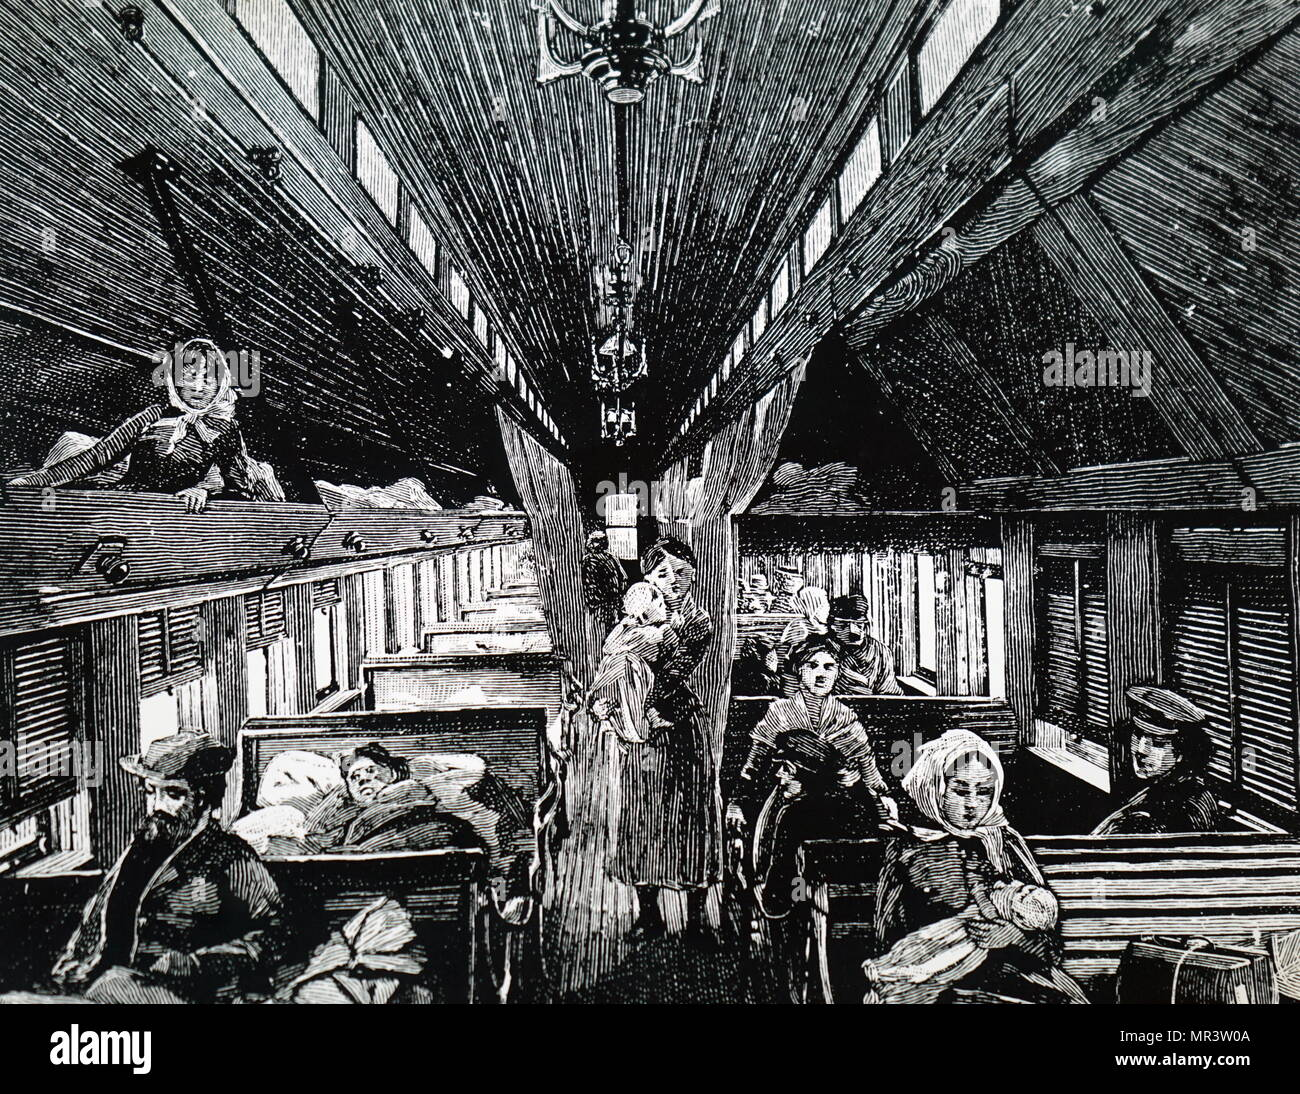 Engraving depicting an immigrant sleeping car on the Canadian Pacific Railway. Dated 19th century - Stock Image